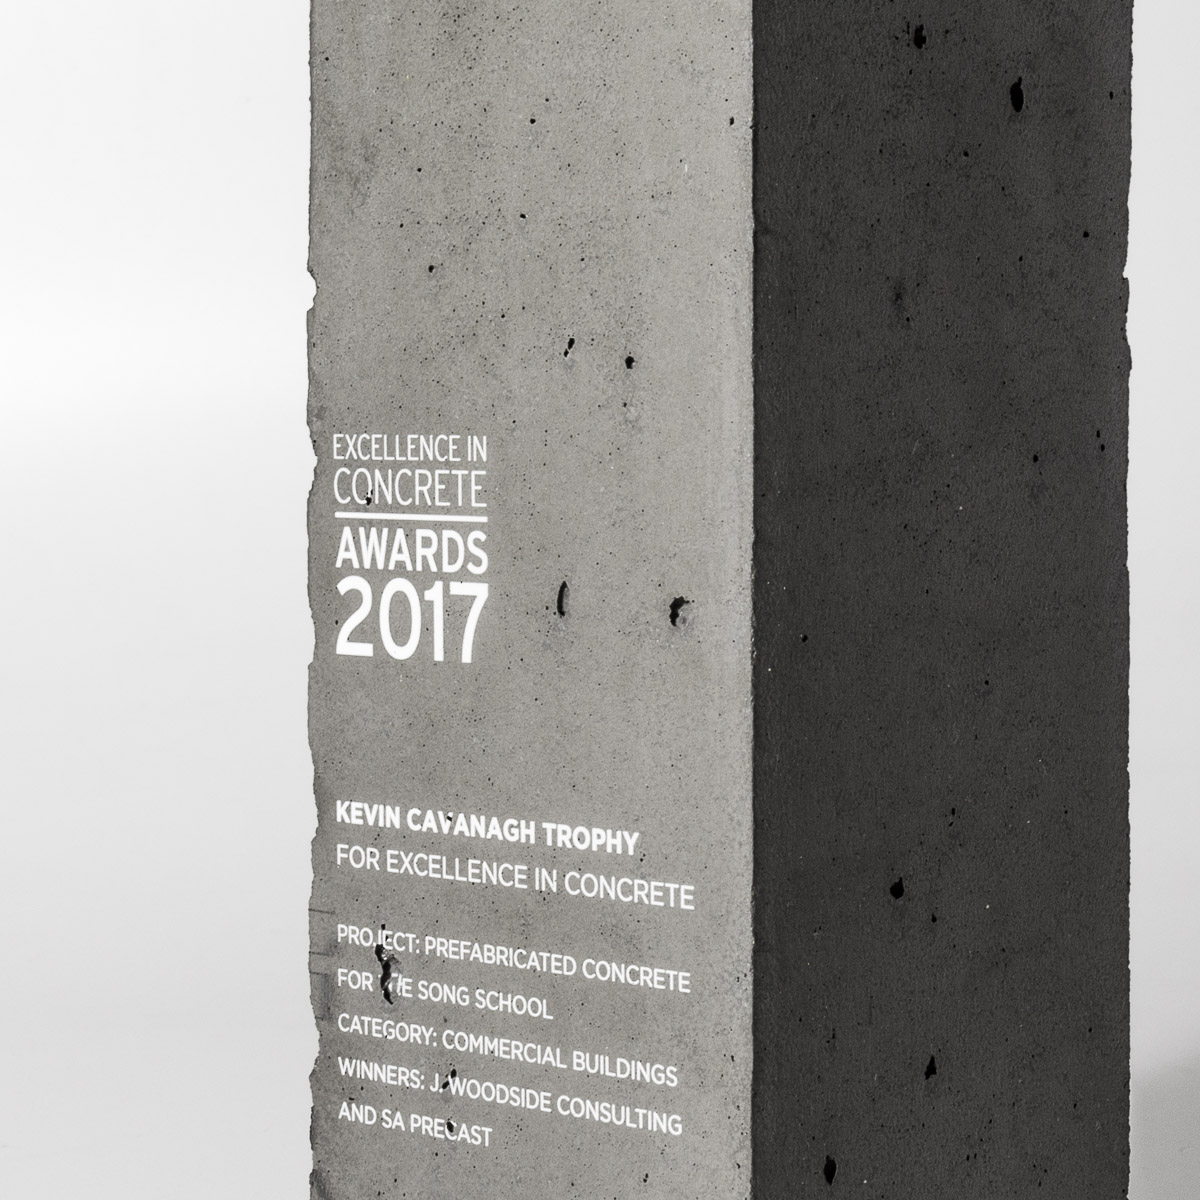 The Concrete Institute of Australia Awards Detail